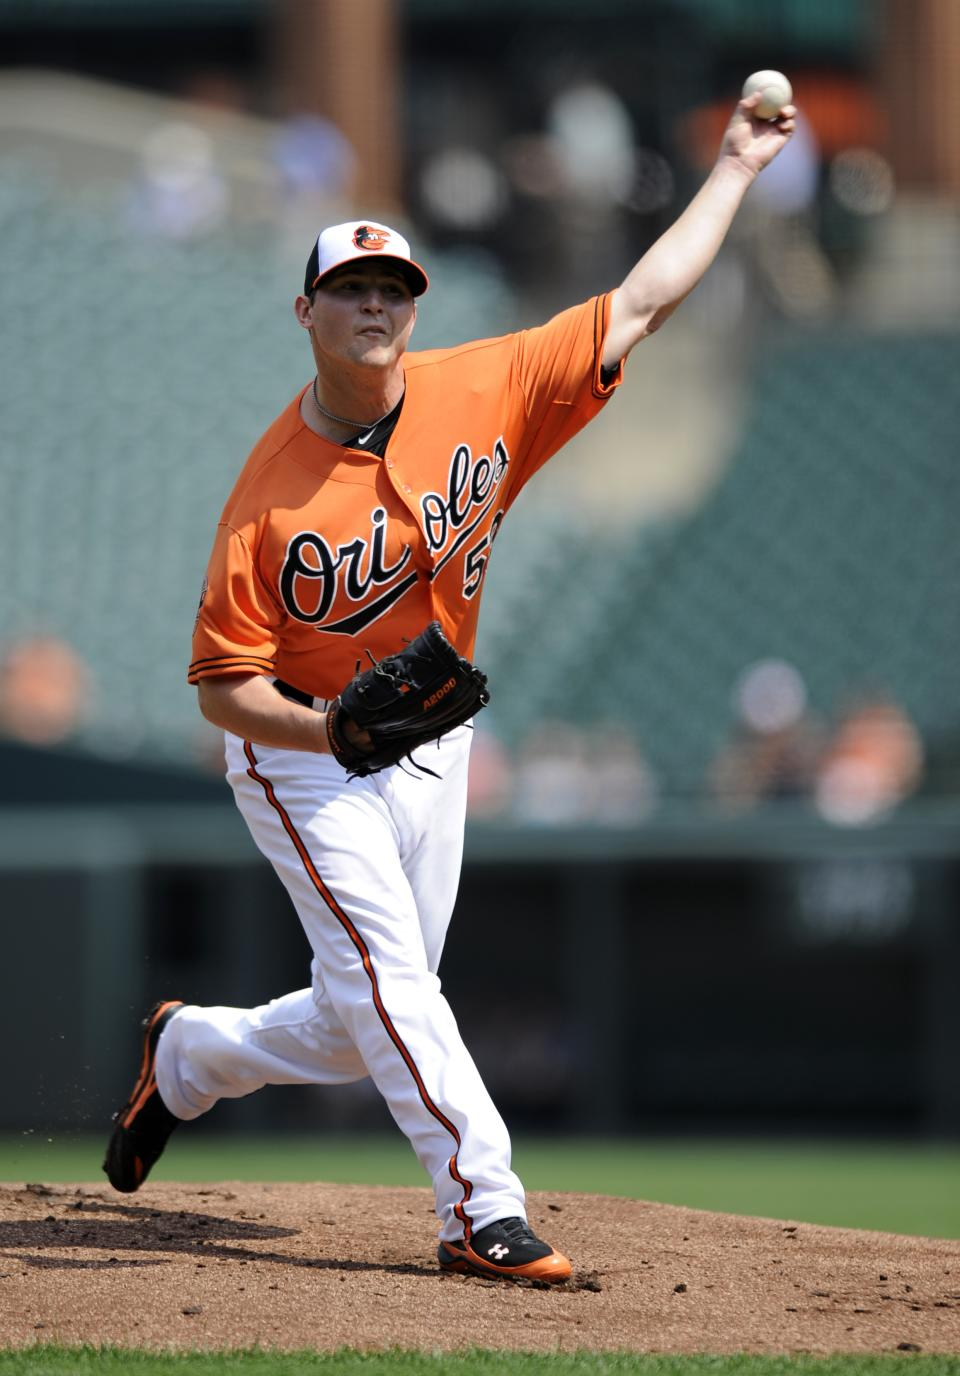 Baltimore Orioles starting pitcher Zach Britton delivers a pitch against the Chicago White Sox during the first inning of a baseball game, Thursday, Aug. 30, 2012, in Baltimore. (AP Photo/Nick Wass)